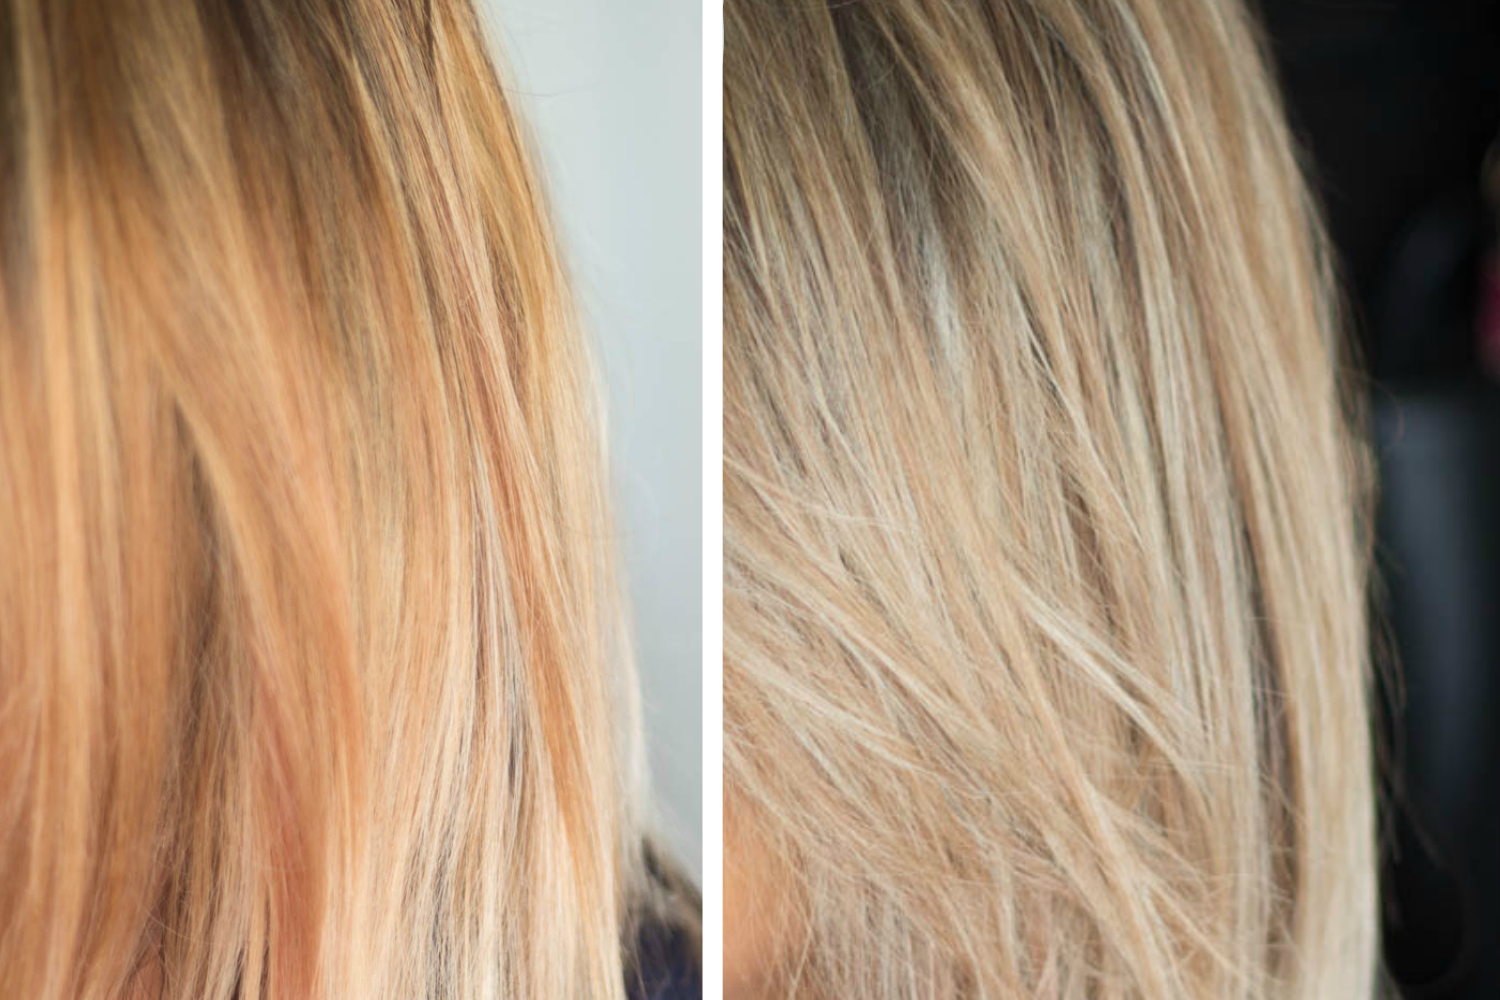 How to Tone Brassy Hair at Home - Wella T14 and Wella T18 ...